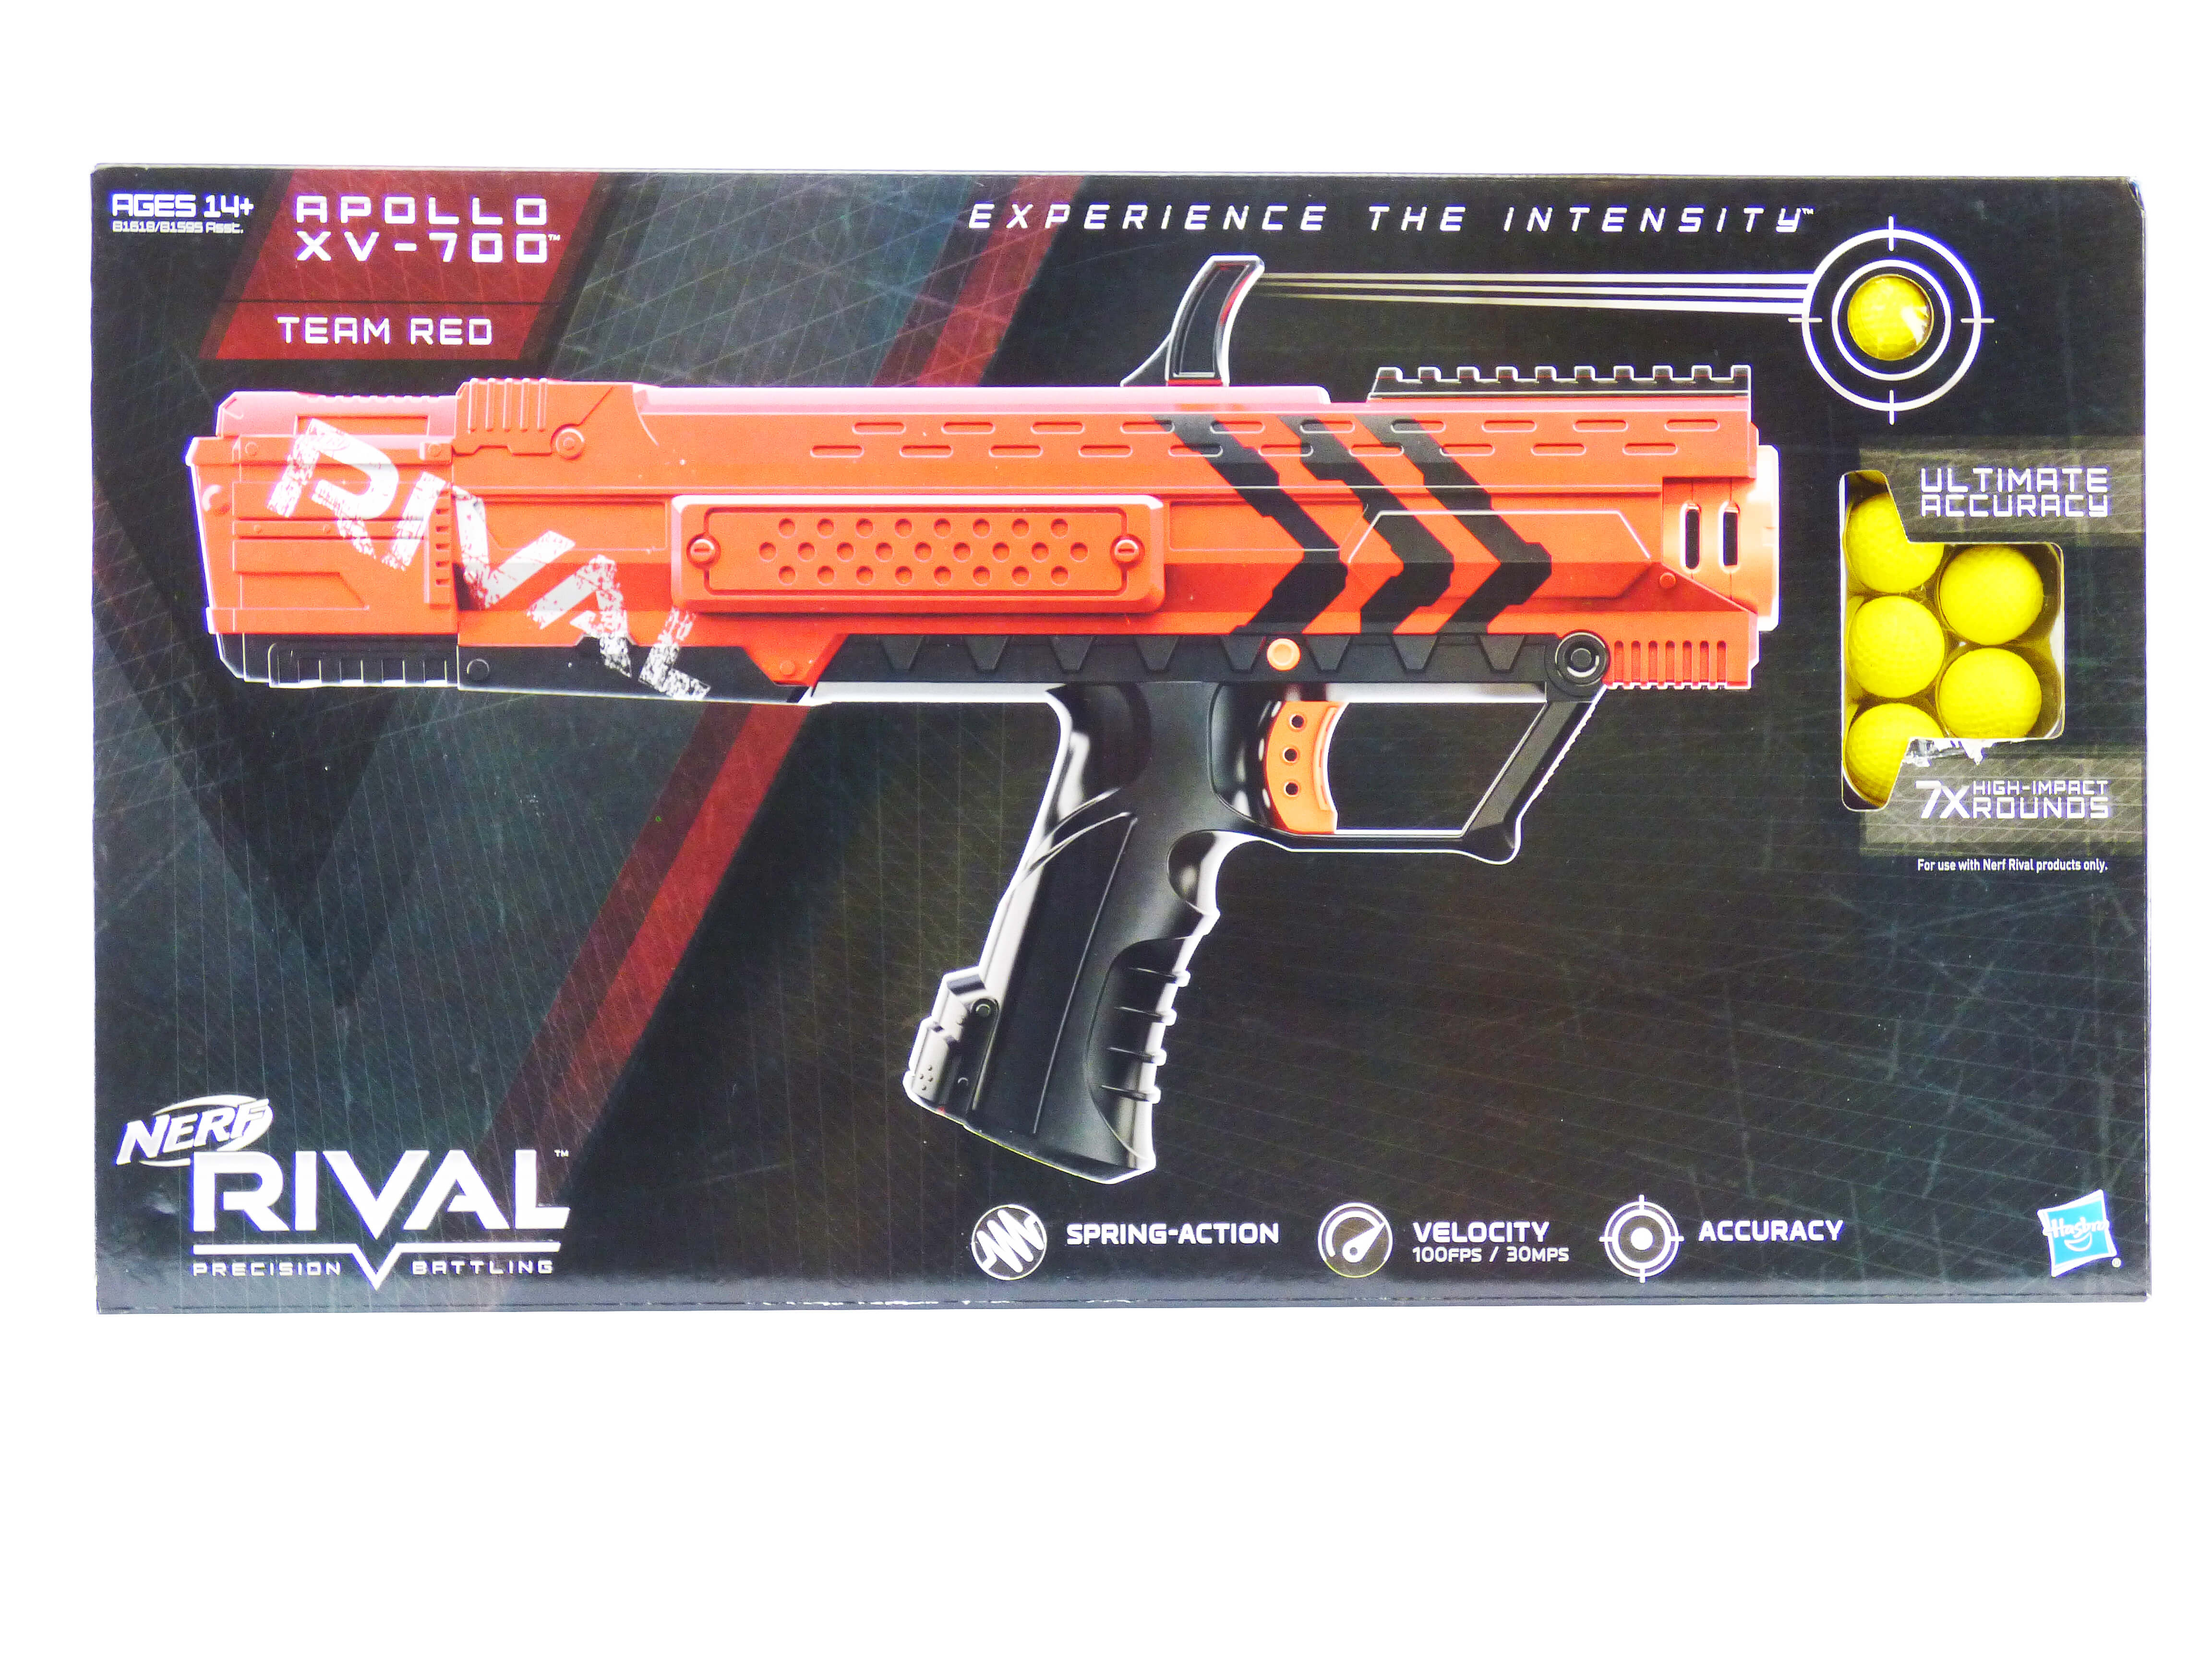 Blue Nerf pollo XV 700 Blaster Red